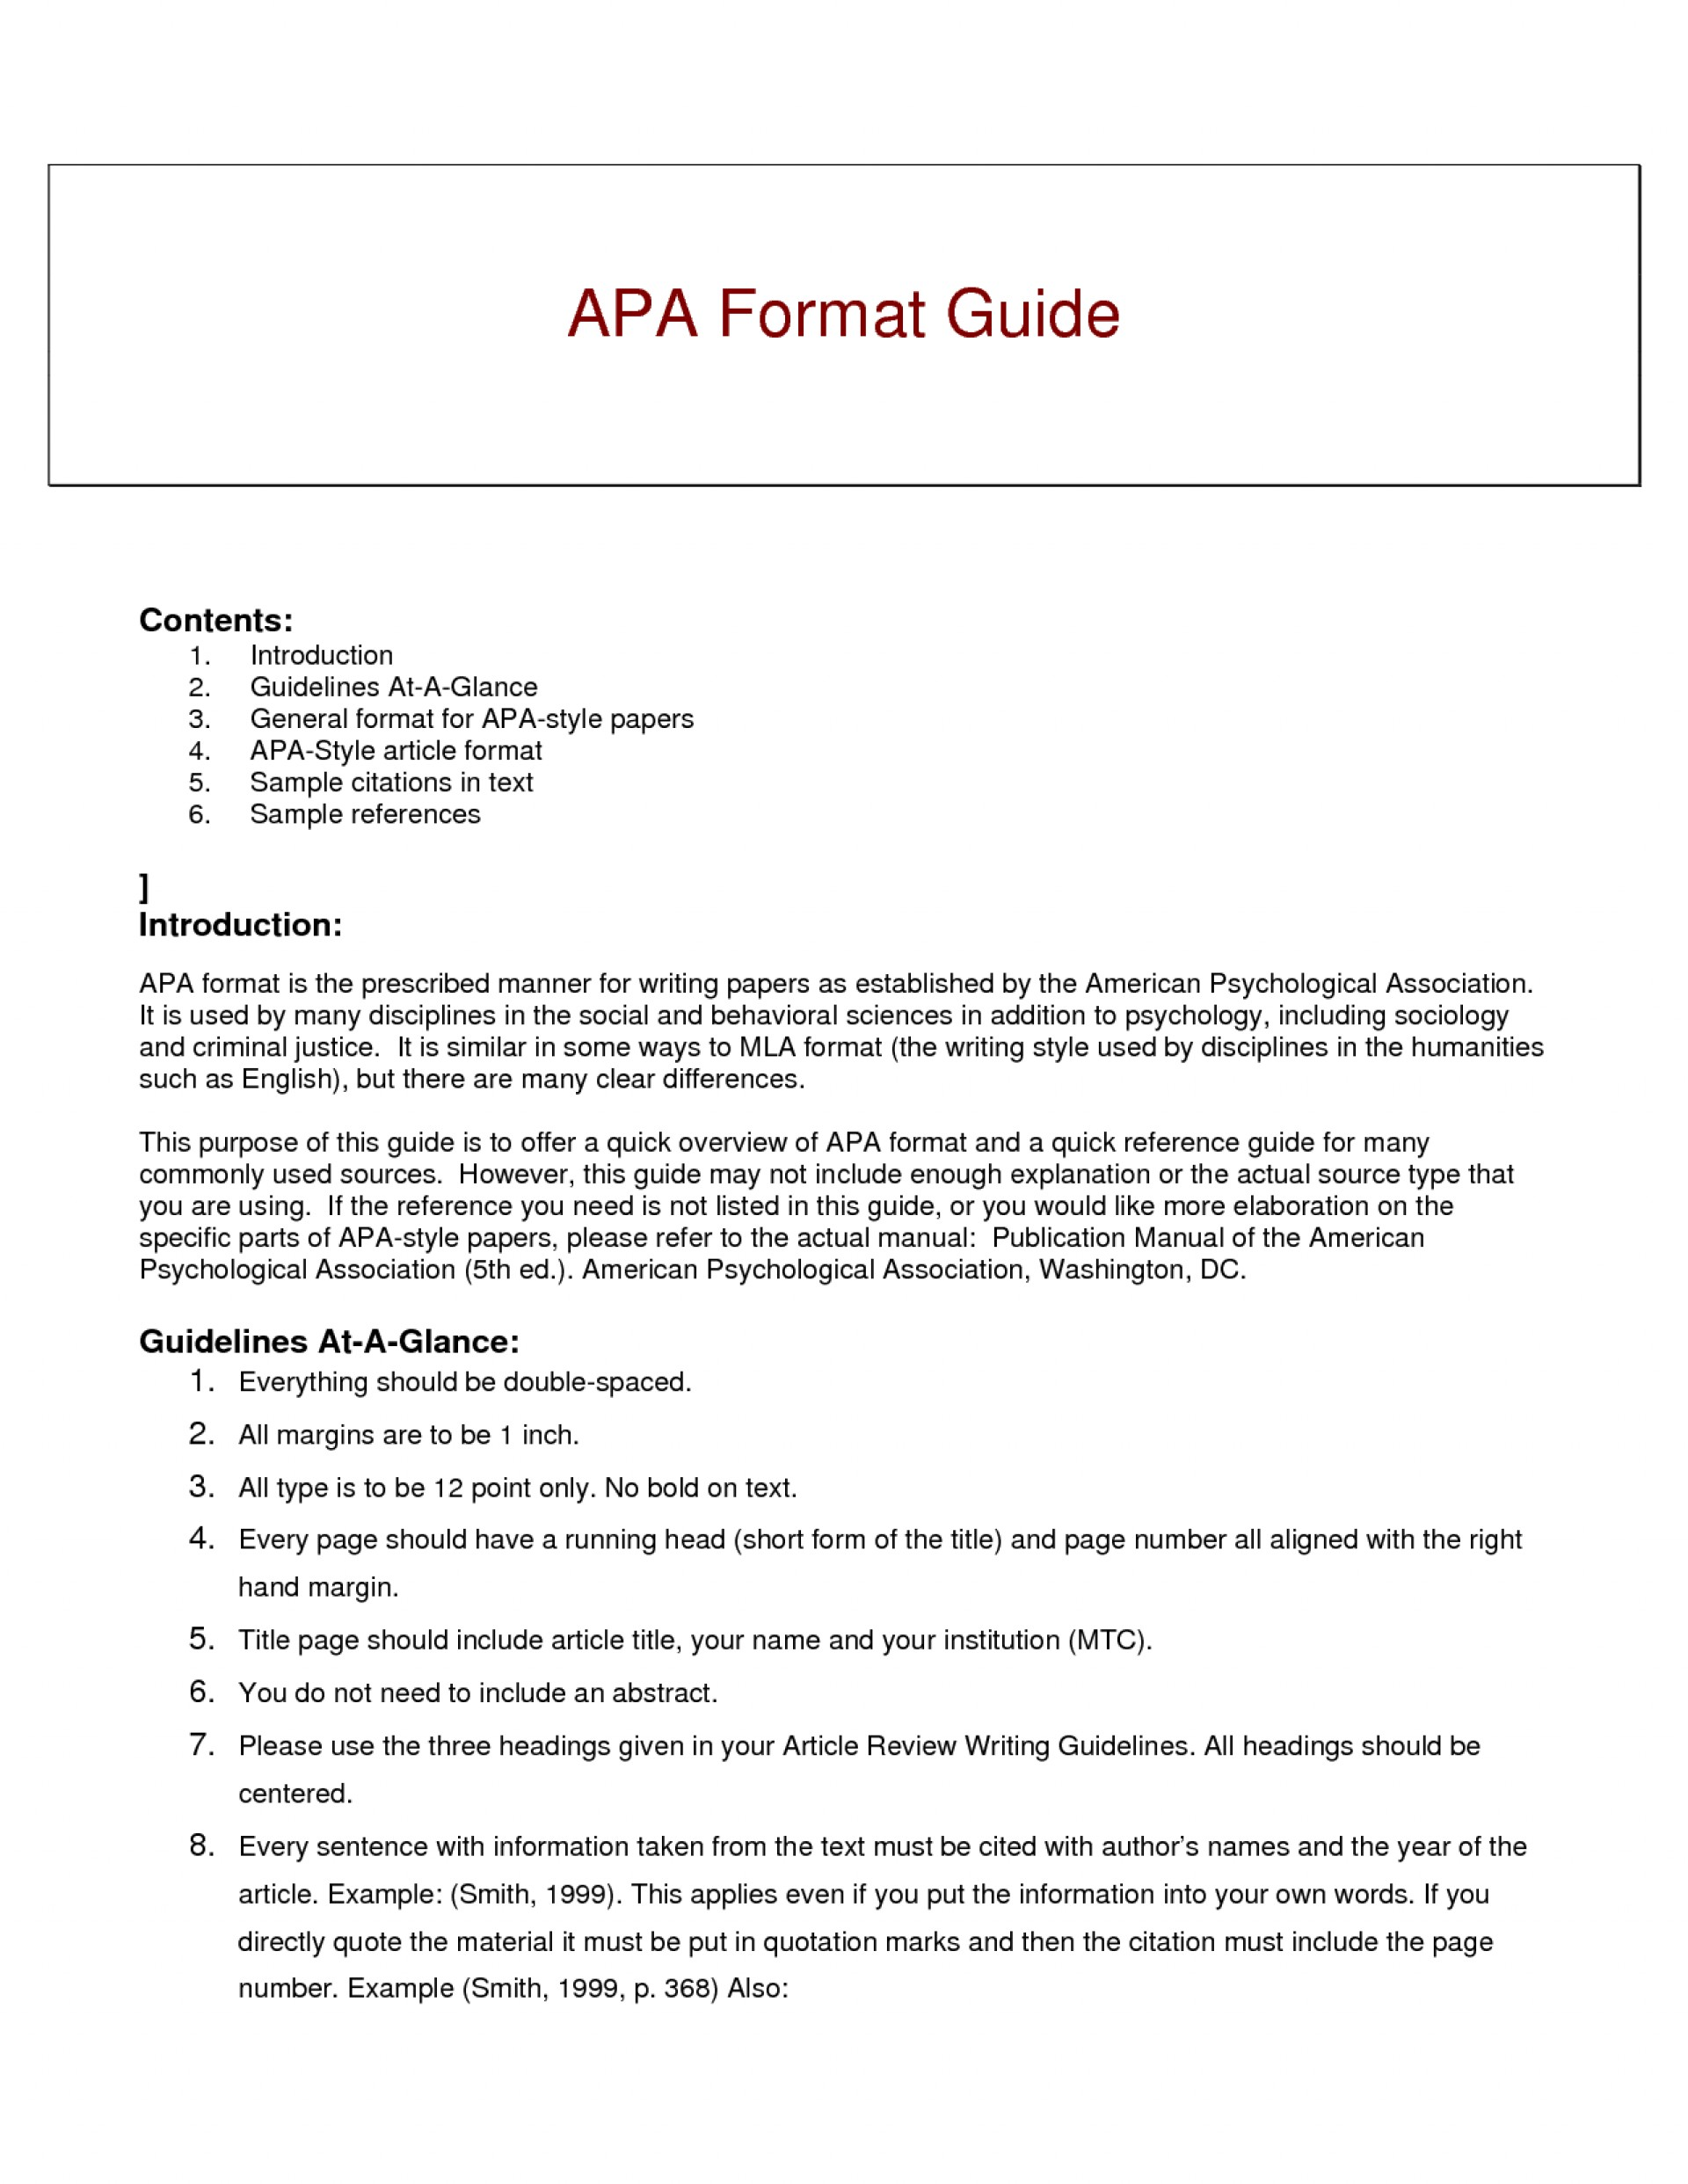 012 Research Paper Short Apa Format Resume Example Of Guide For Writing Style Excellent A Papers 1920